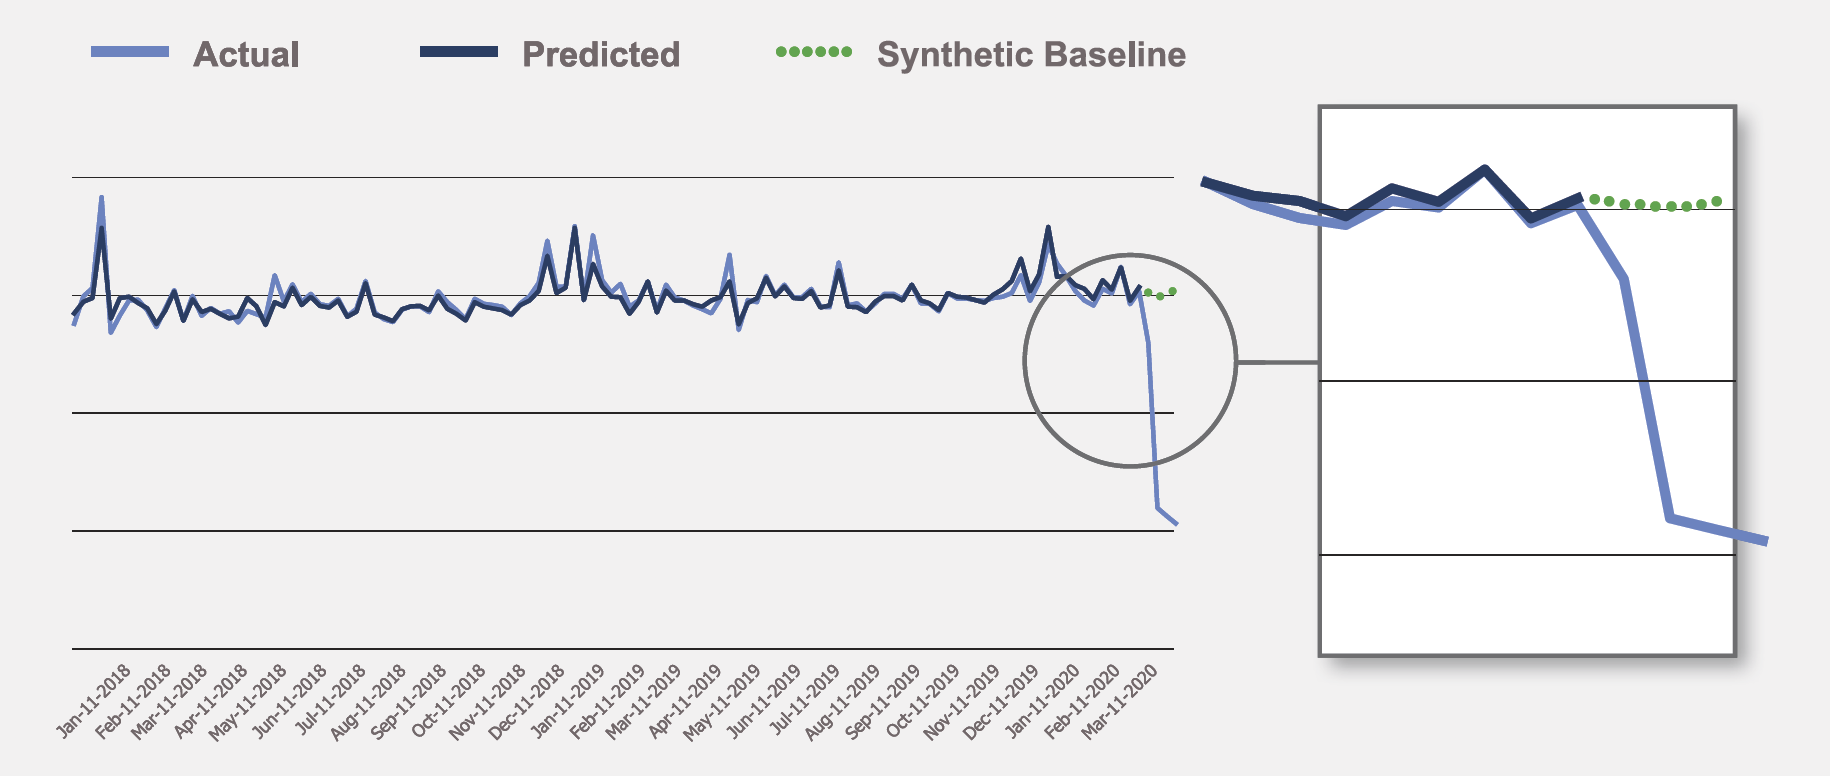 Expectation of sales in the absence of COVID-19 (green dotted line) vs. actual (light blue line).